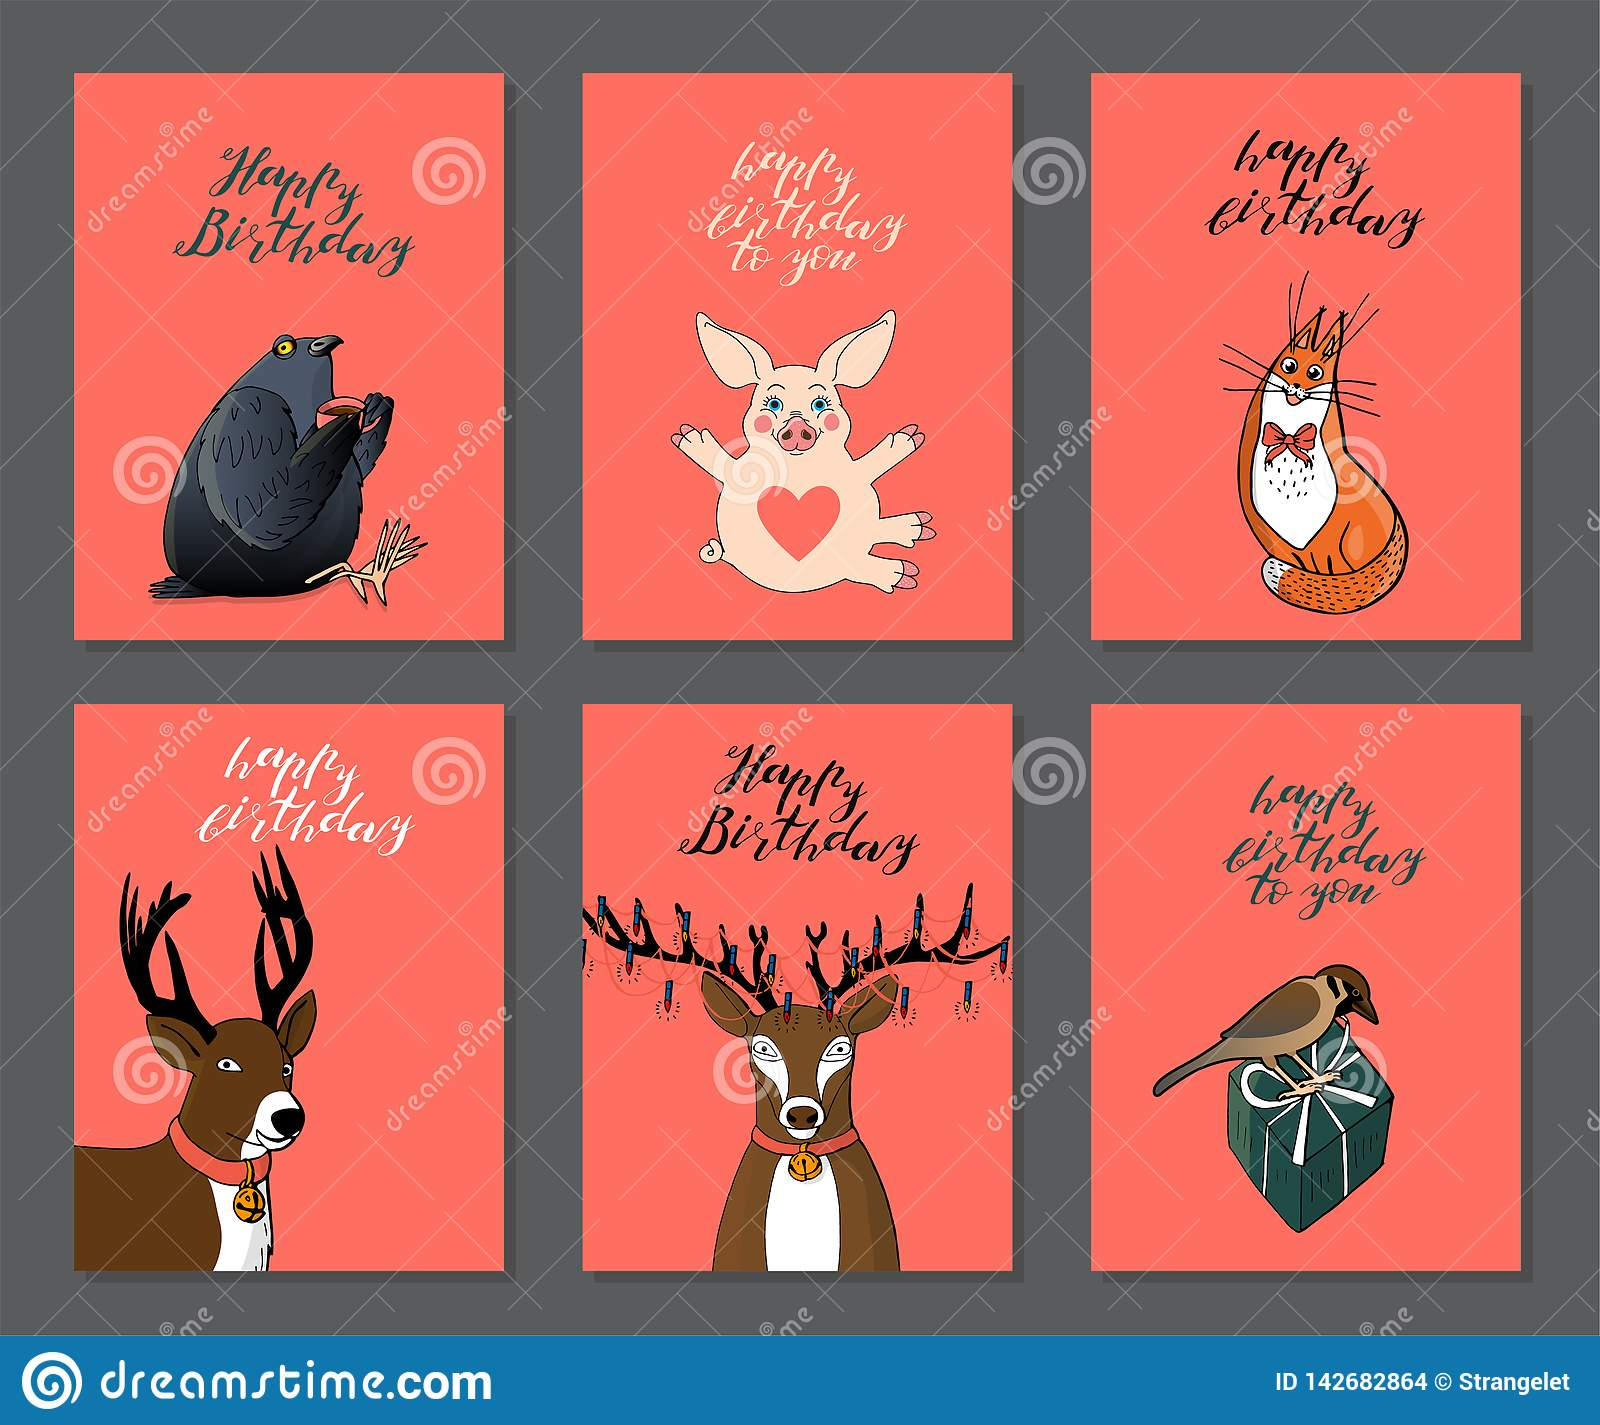 Set Of Birthday Greeting Cards On Pink Background With Cute Animals Red Cat Pigeon Deer Pig And Sparrow Stock Illustration Illustration Of Collection Character 142682864